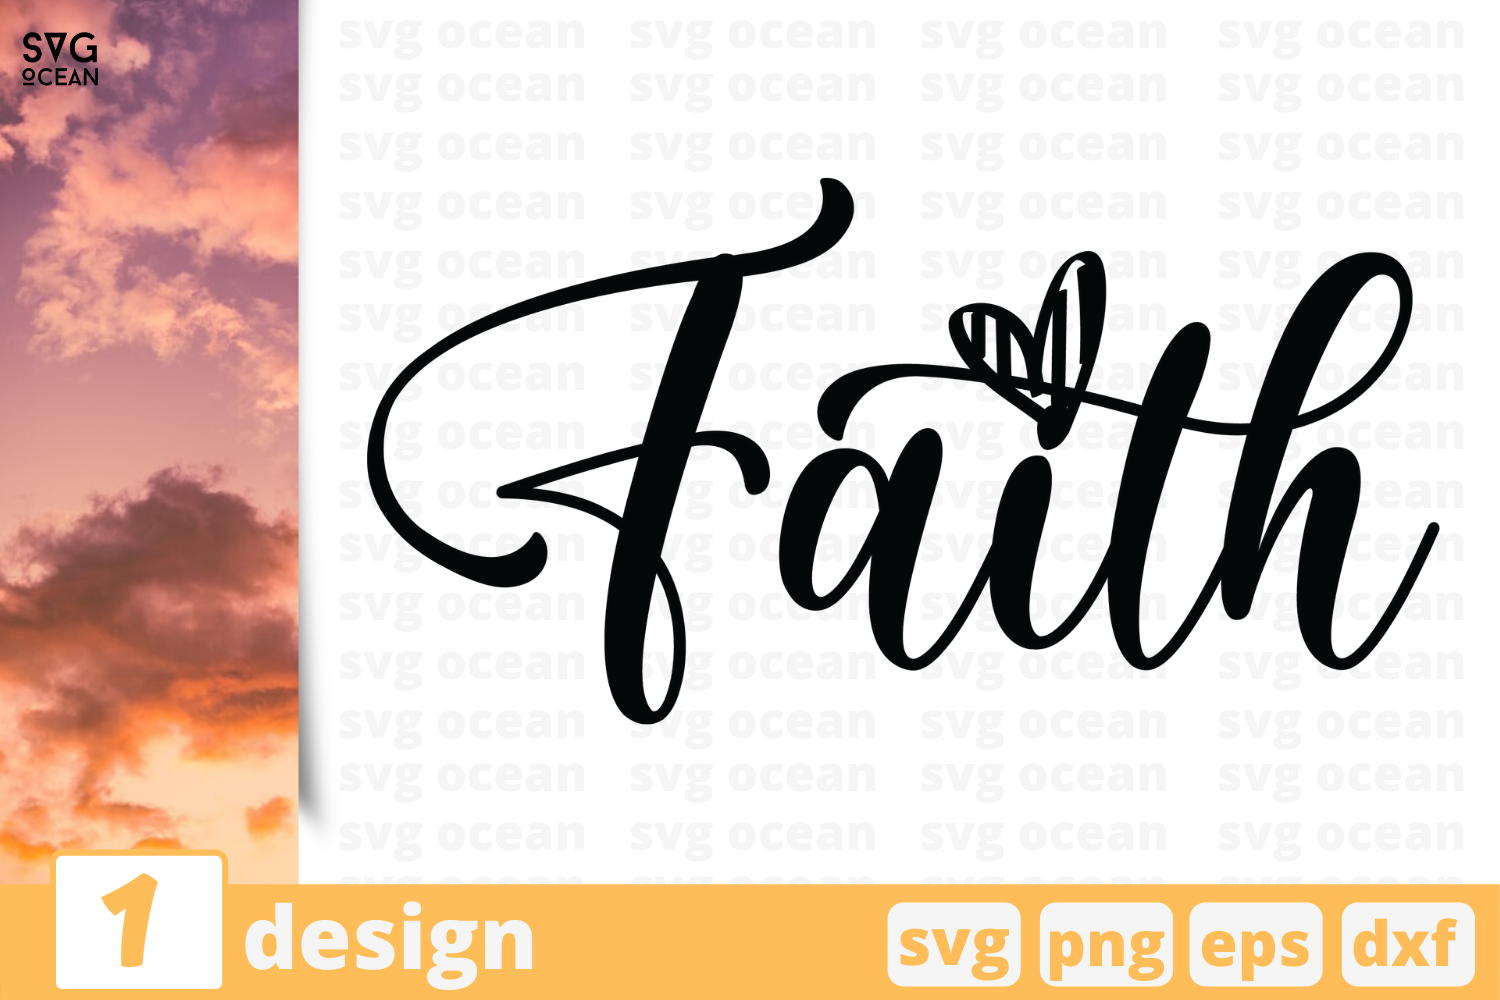 Download Free Faith Graphic By Svgocean Creative Fabrica for Cricut Explore, Silhouette and other cutting machines.